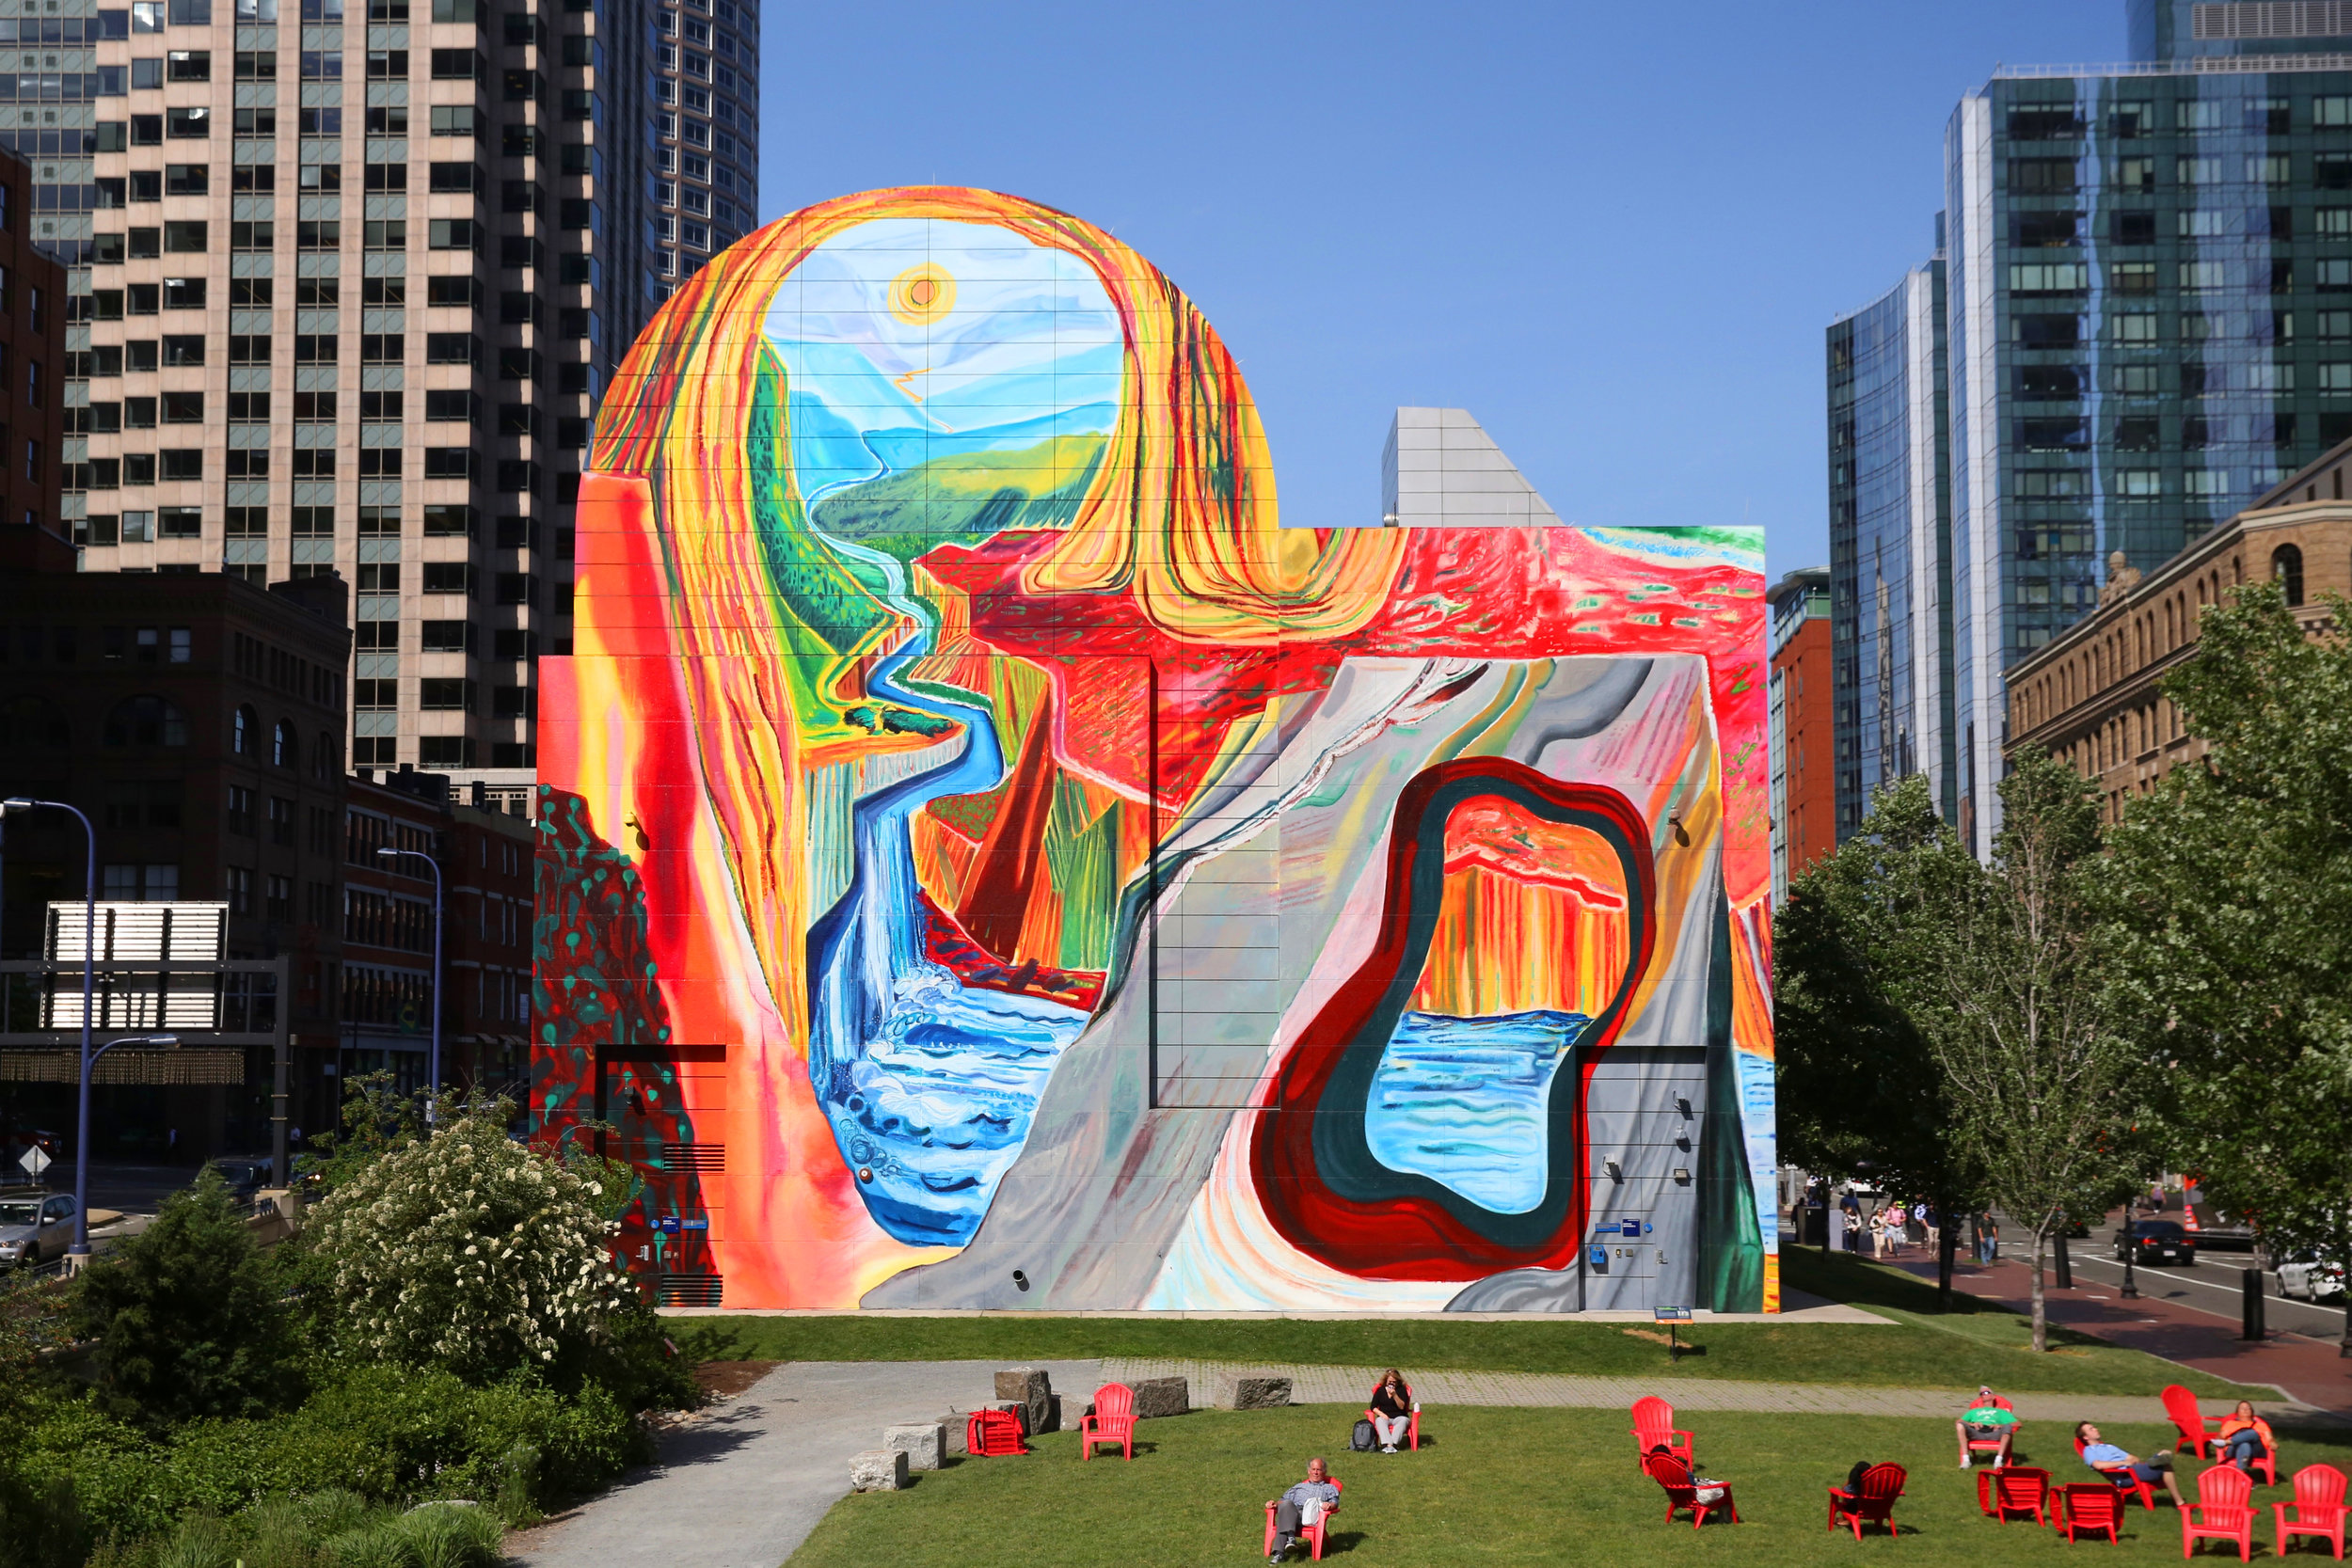 Shara Hughes, Carving Out Fresh Options, 2018, Mural, 70 x 76 feet, Courtesy of the Greenway Conservancy. Photo credit: Todd Mazer Photography